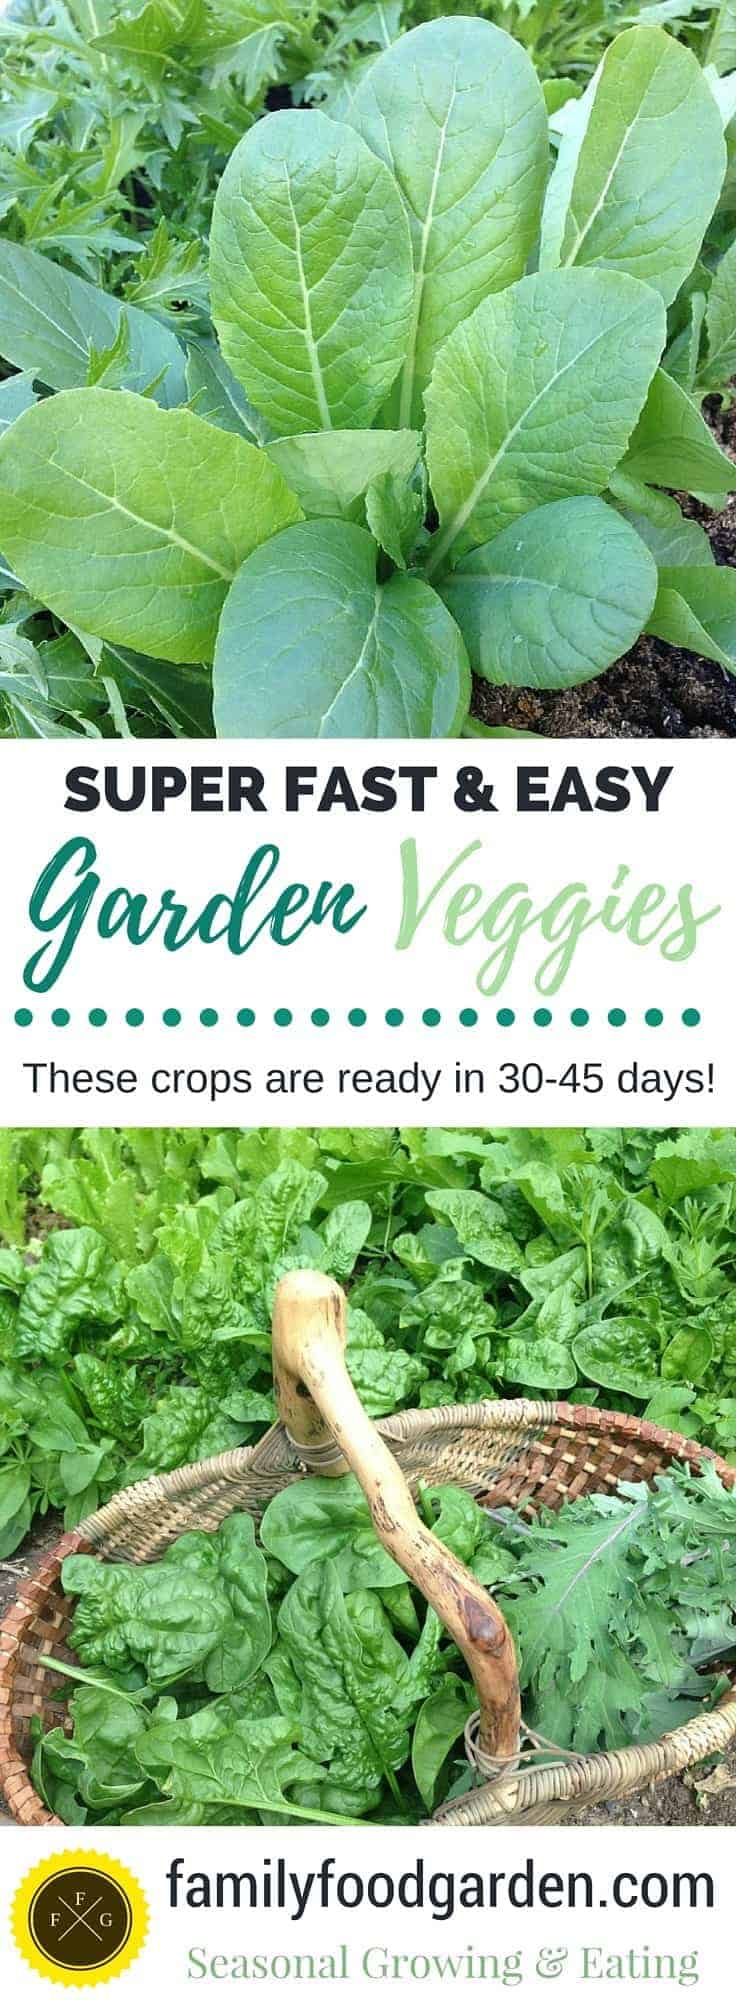 Ready in 30-45 days! These veggies are also super easy and fast to grow